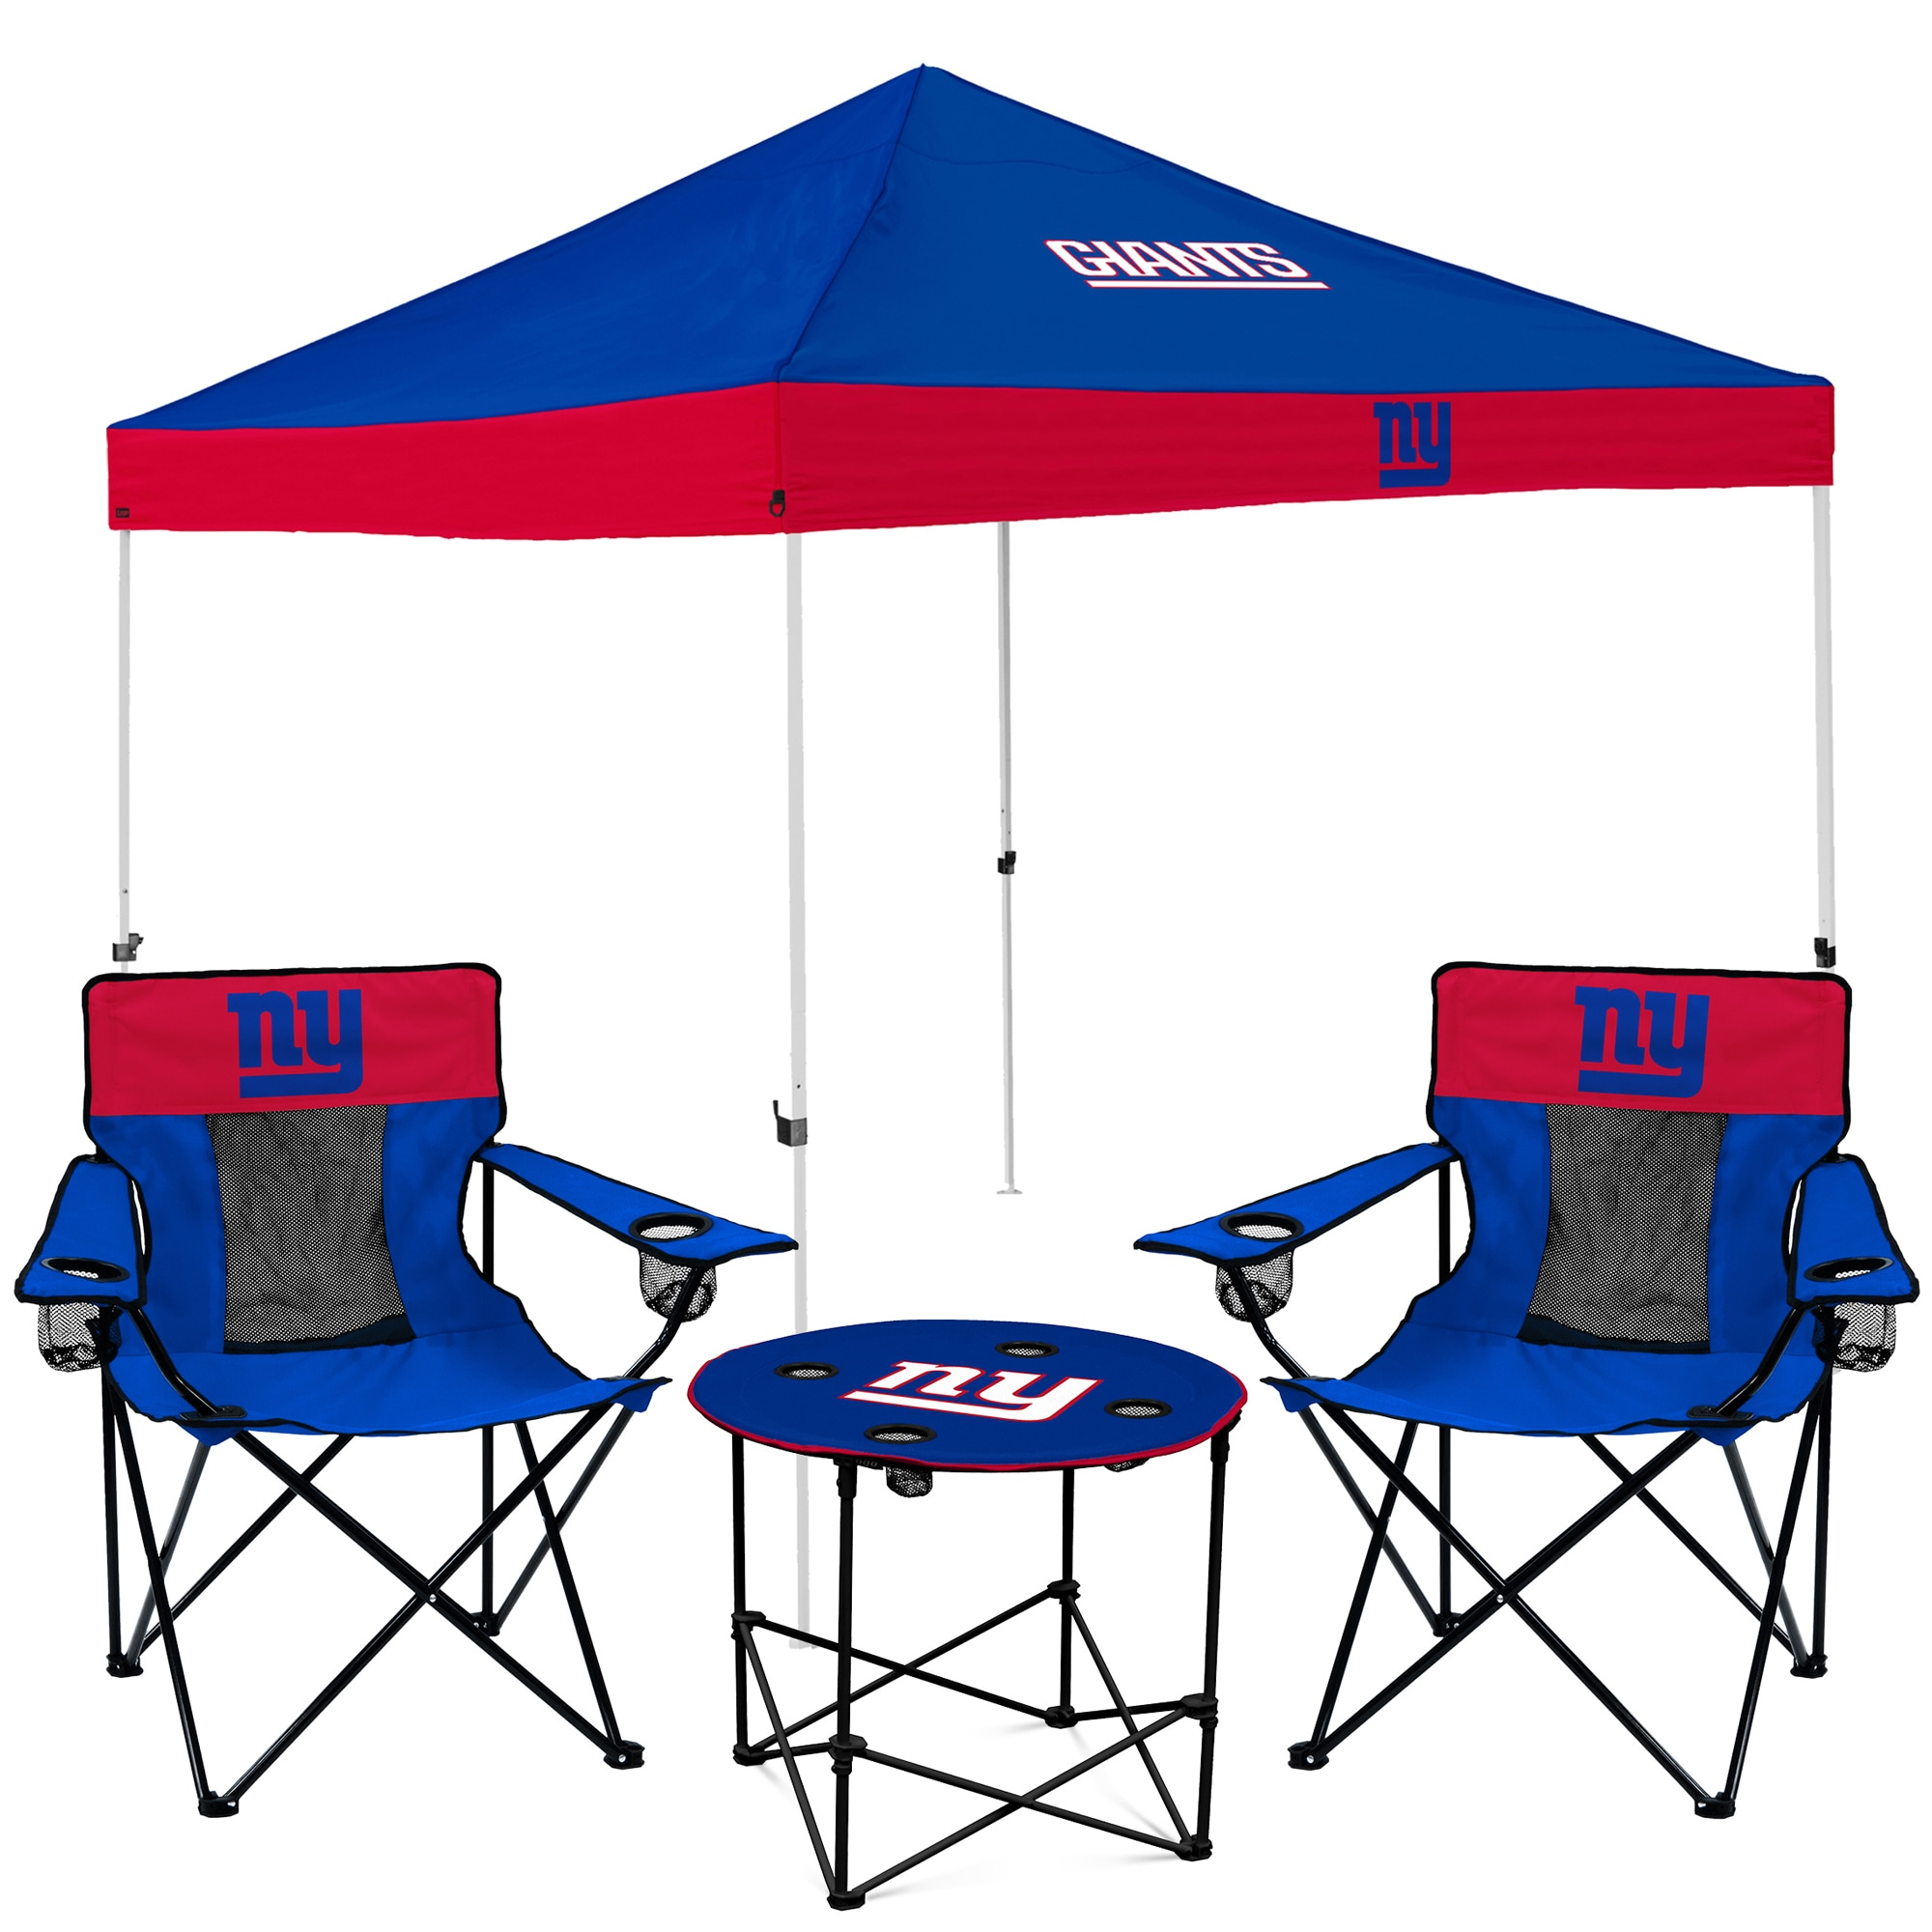 New York Giants Tailgate Canopy Tent, Table, & Chairs Set